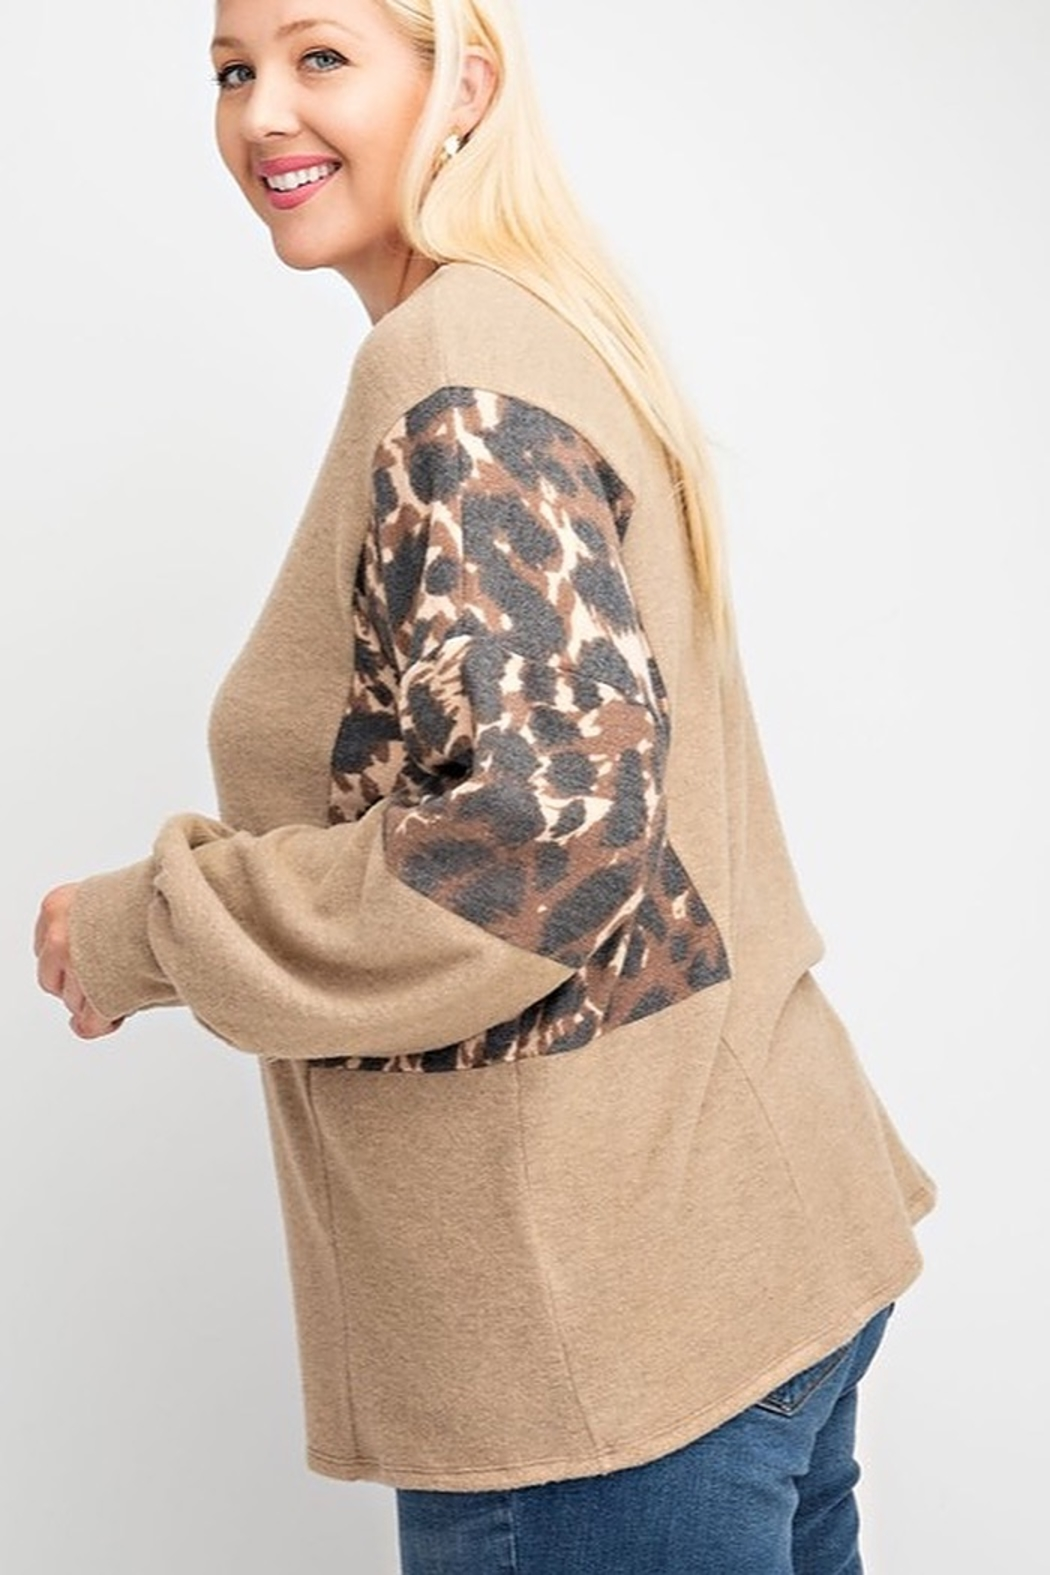 143 Story LEOPARD PRINT BRUSHED SOFT KNIT CONTRAST BUBBLE LONG SLEEVE TOP - Front Full Image